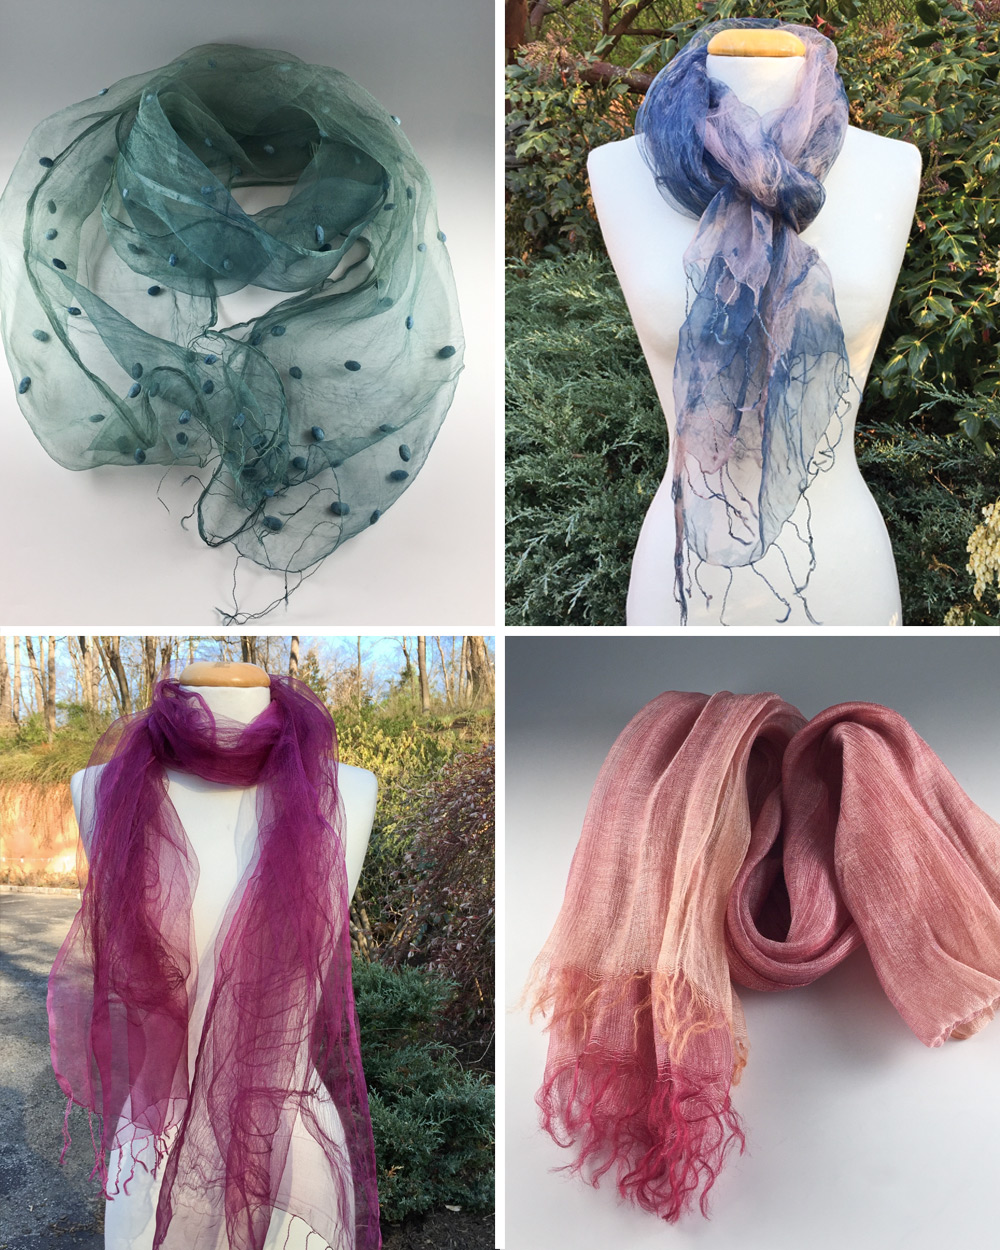 Scarves of Jane Porter